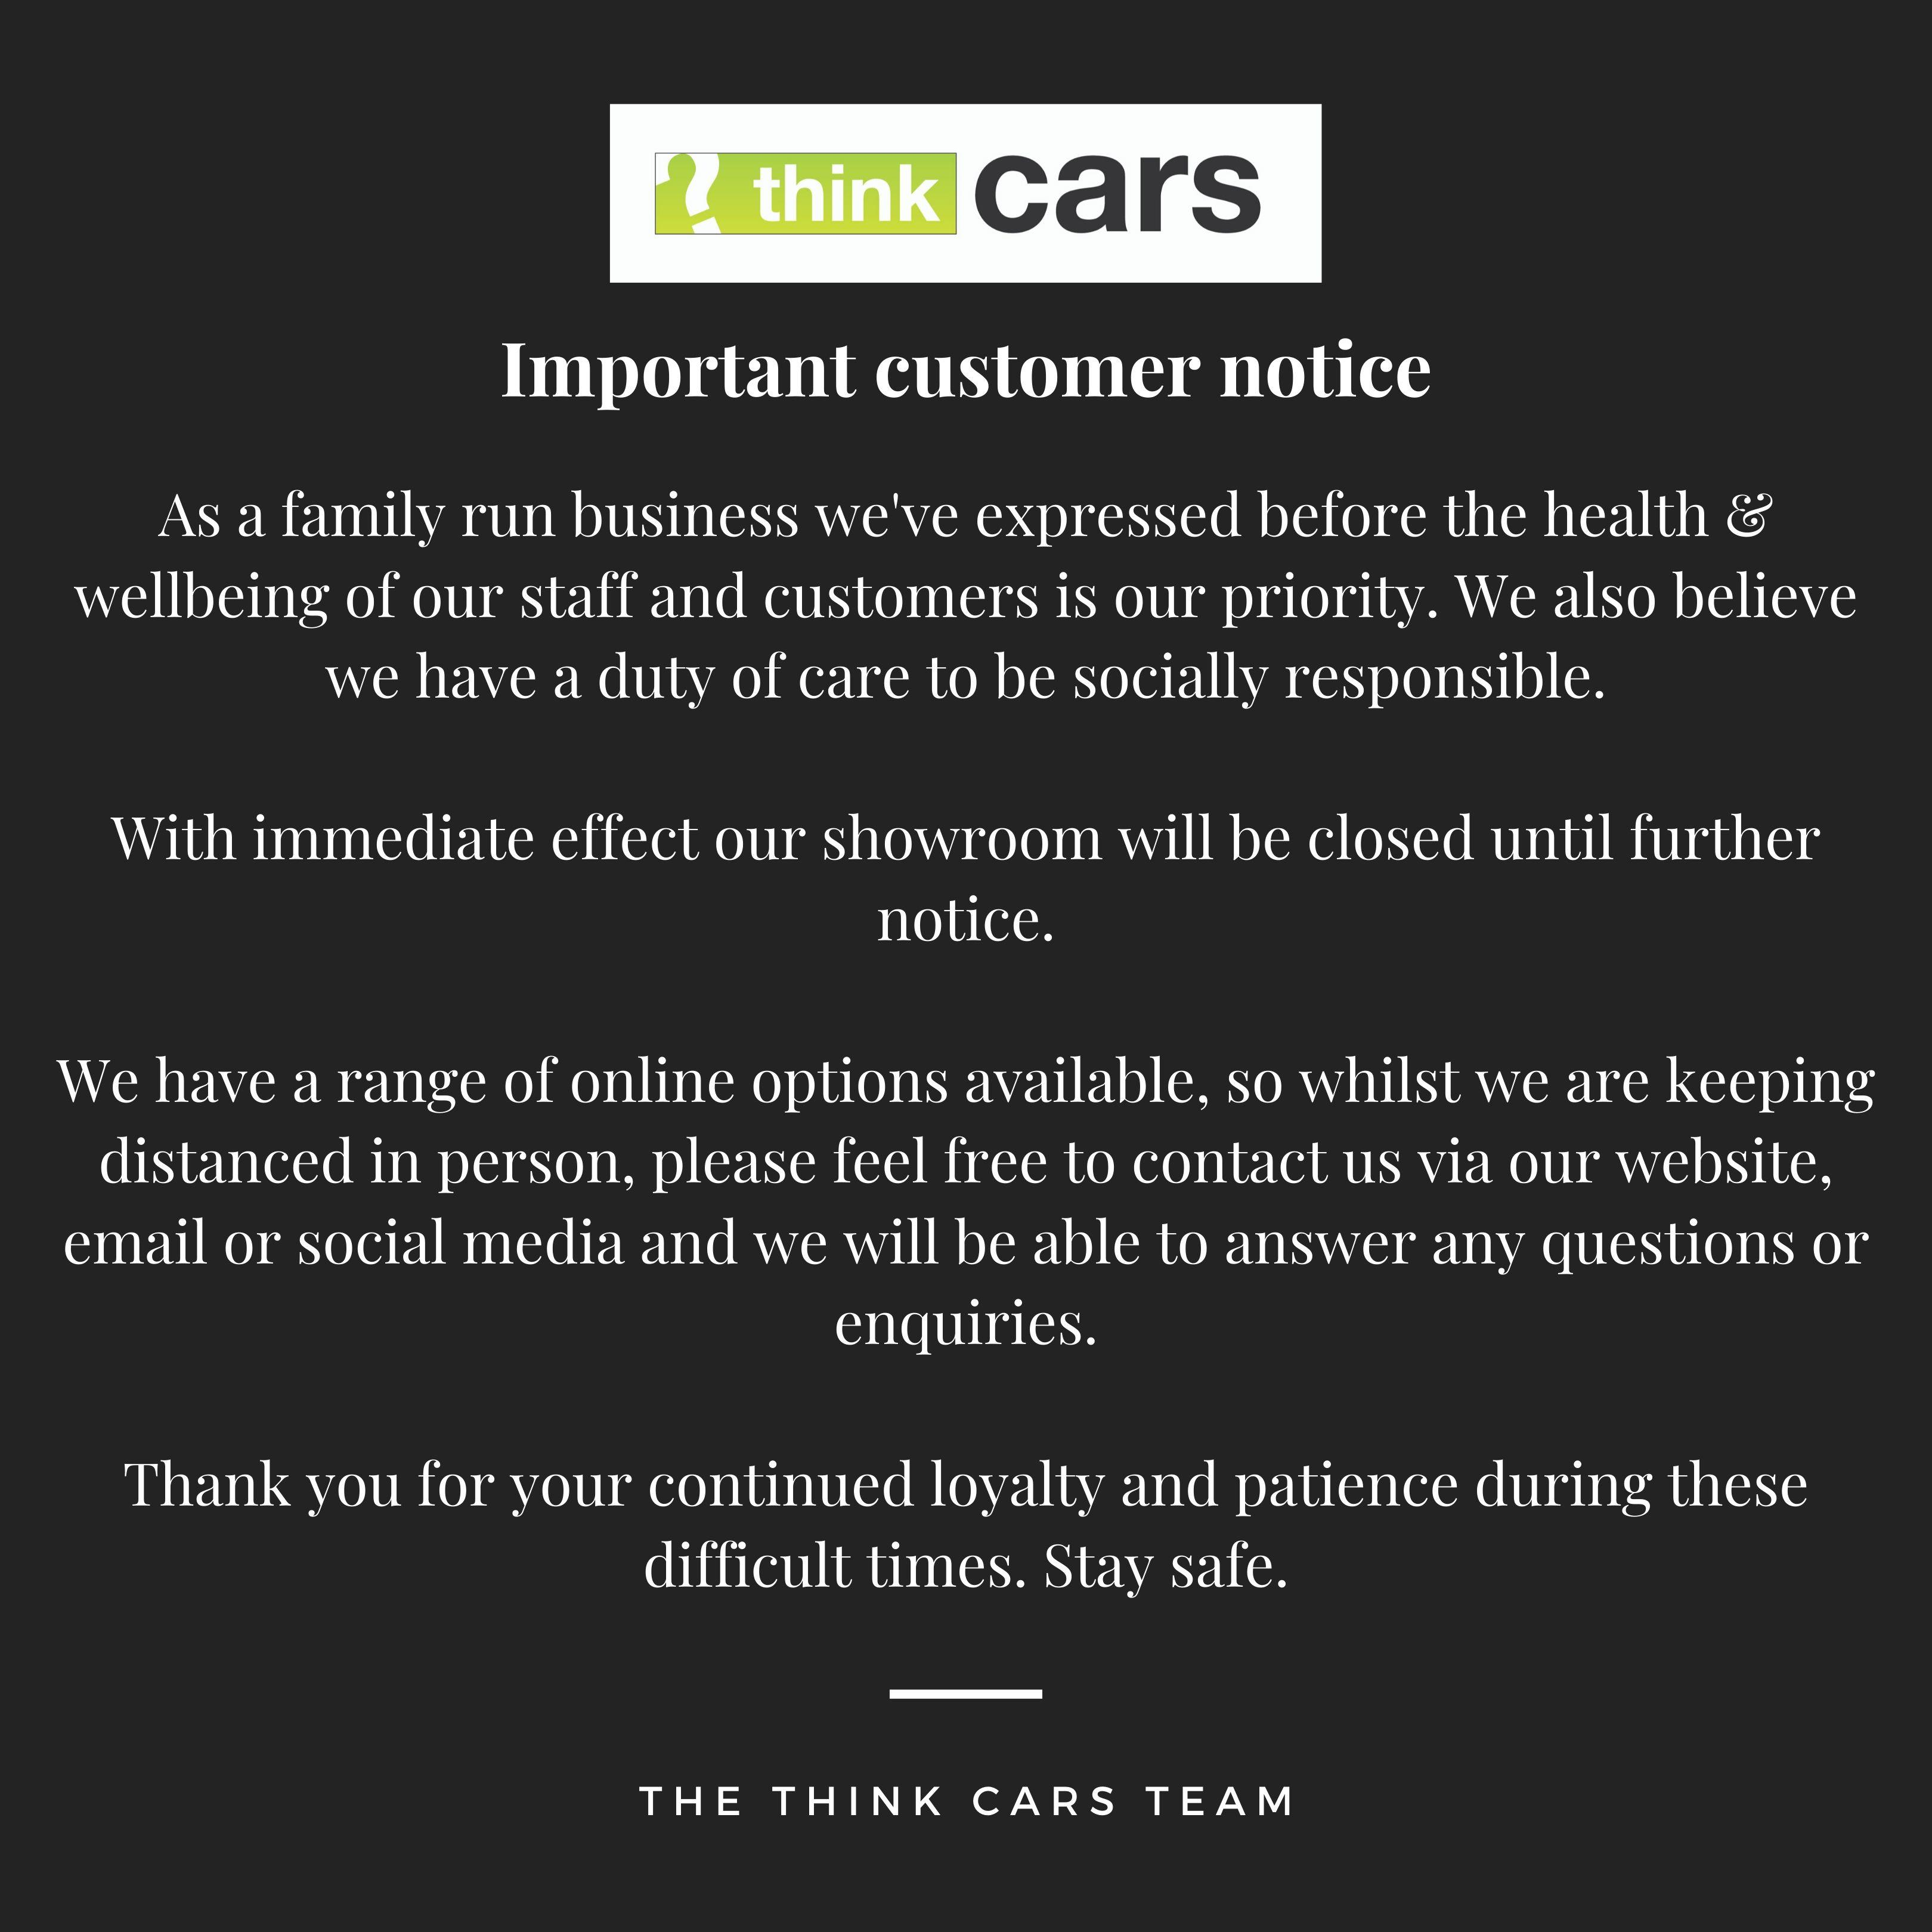 Important customer notice